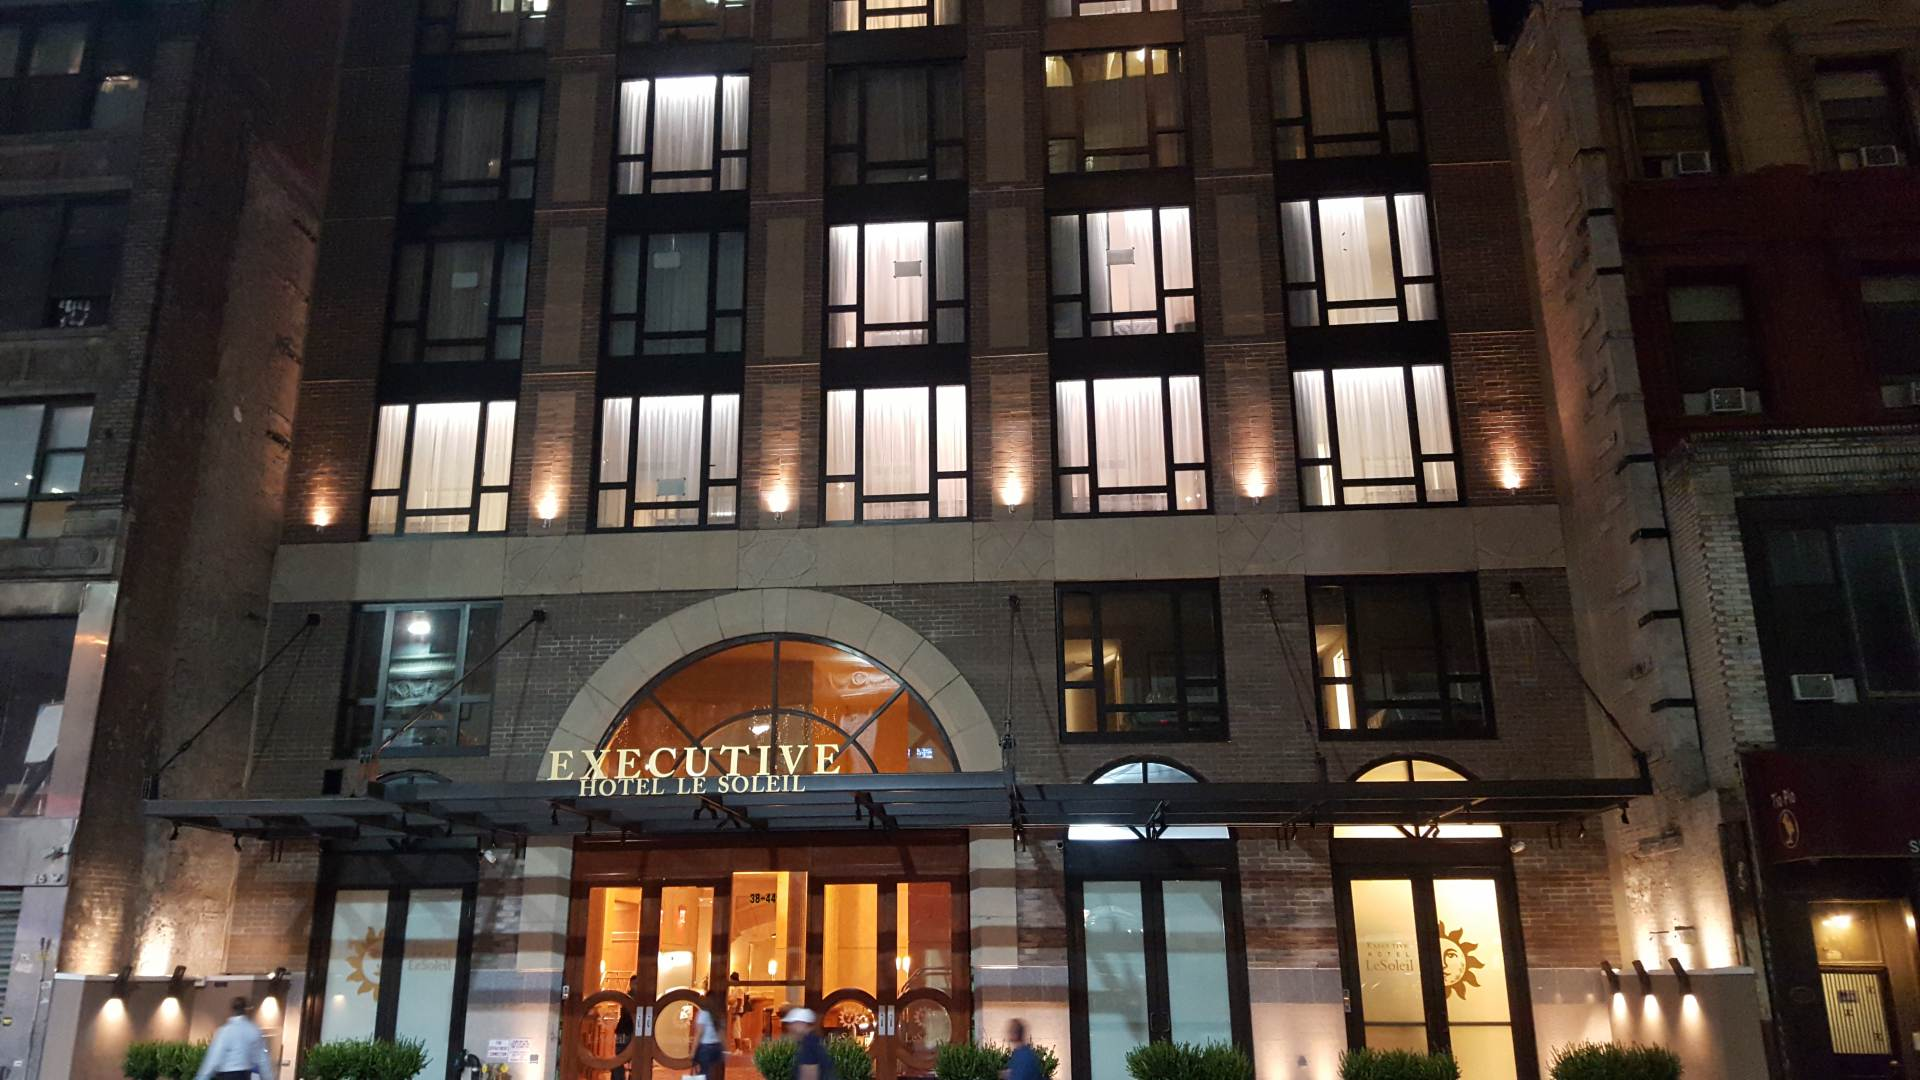 Executive Hotel Le Soleil - New York